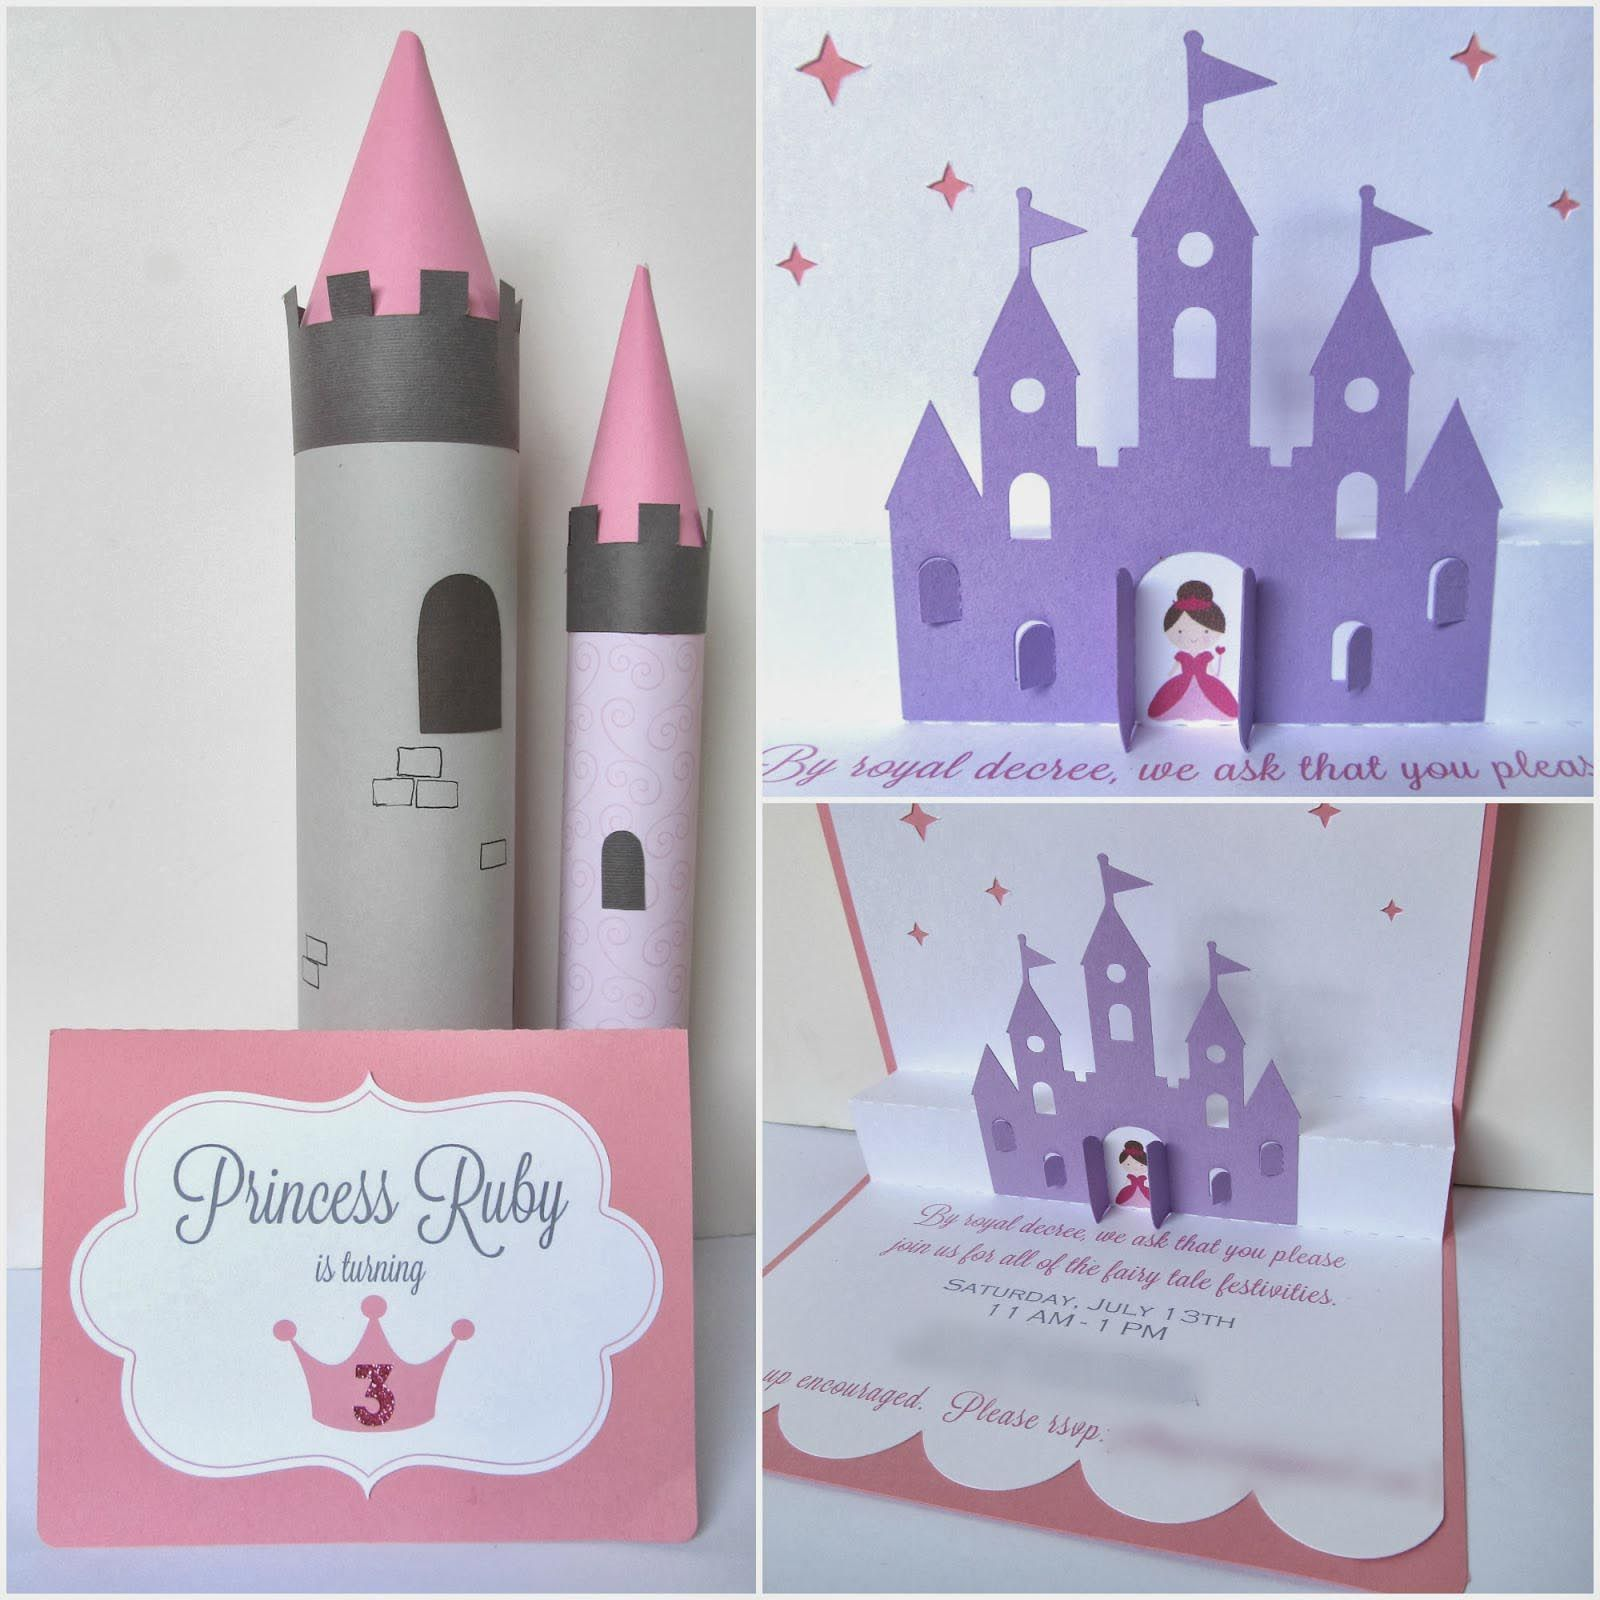 Homemade Princess Party Invitations | Disney princess | Pinterest ...